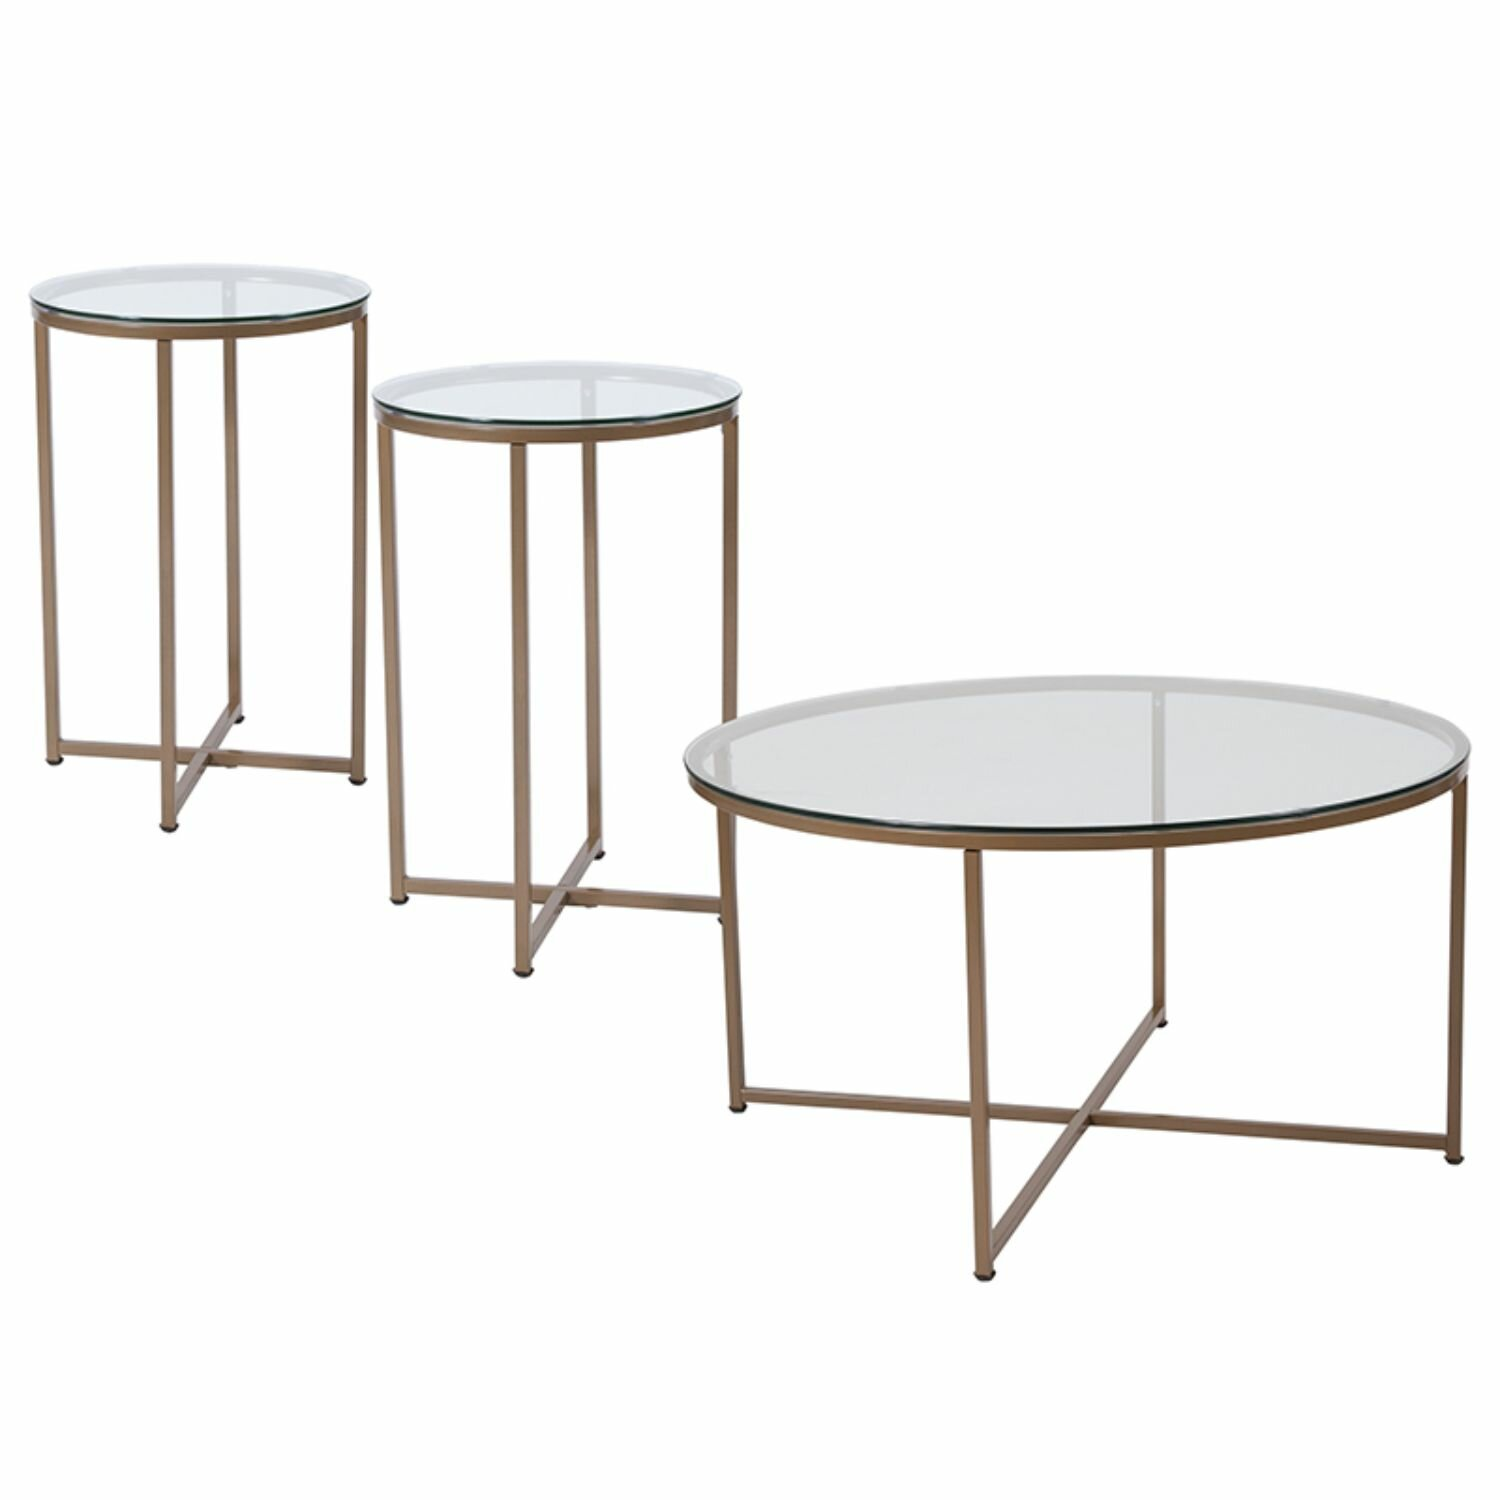 3 Piece Glass Top Coffee Table Sets.Gaener 3 Piece Coffee Table Set